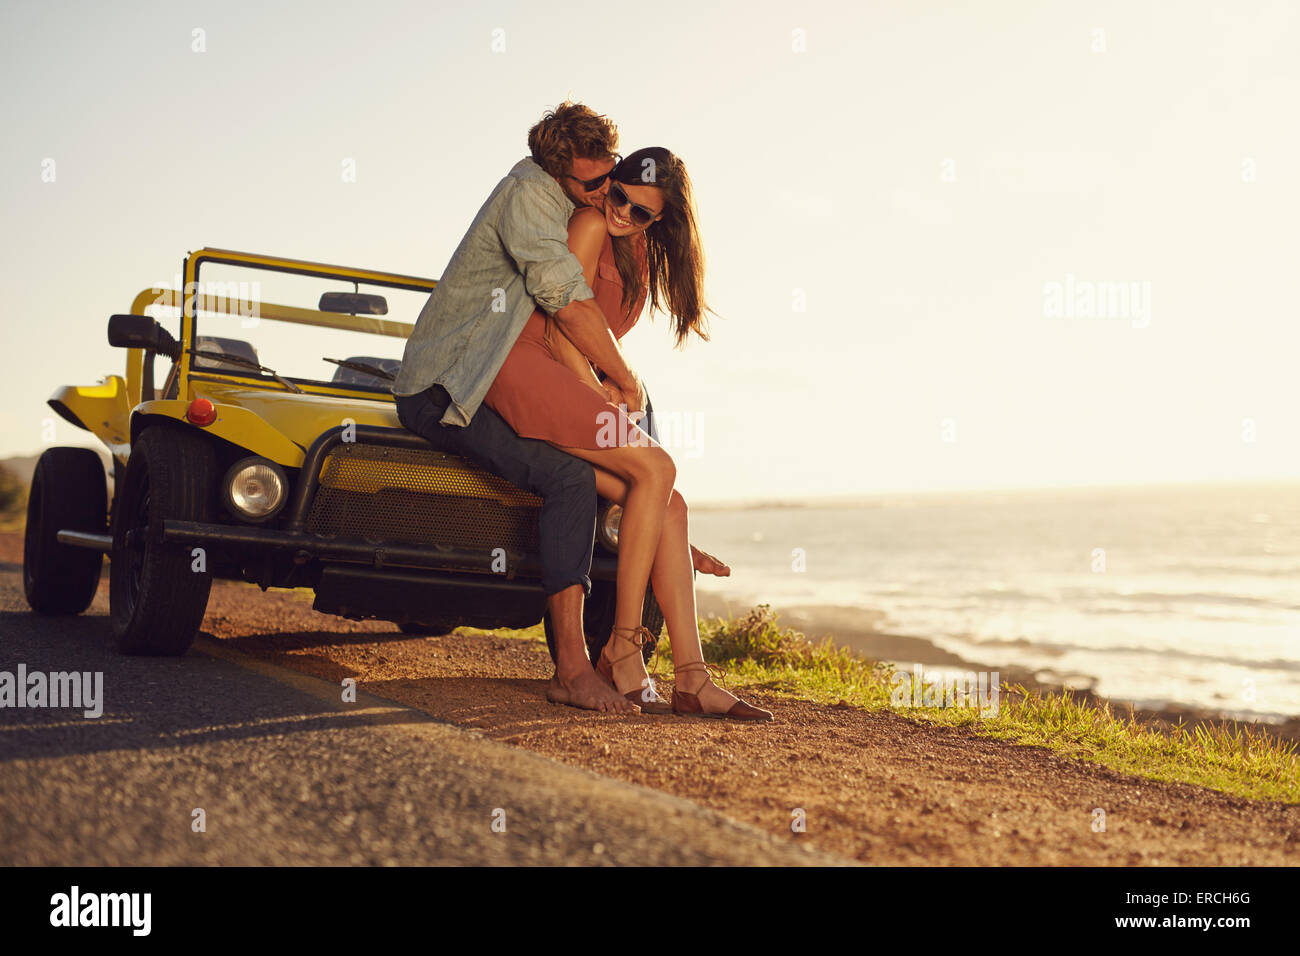 Romantic young couple sharing a special moment while outdoors. Young couple in love on a road trip. Couple embracing Stock Photo